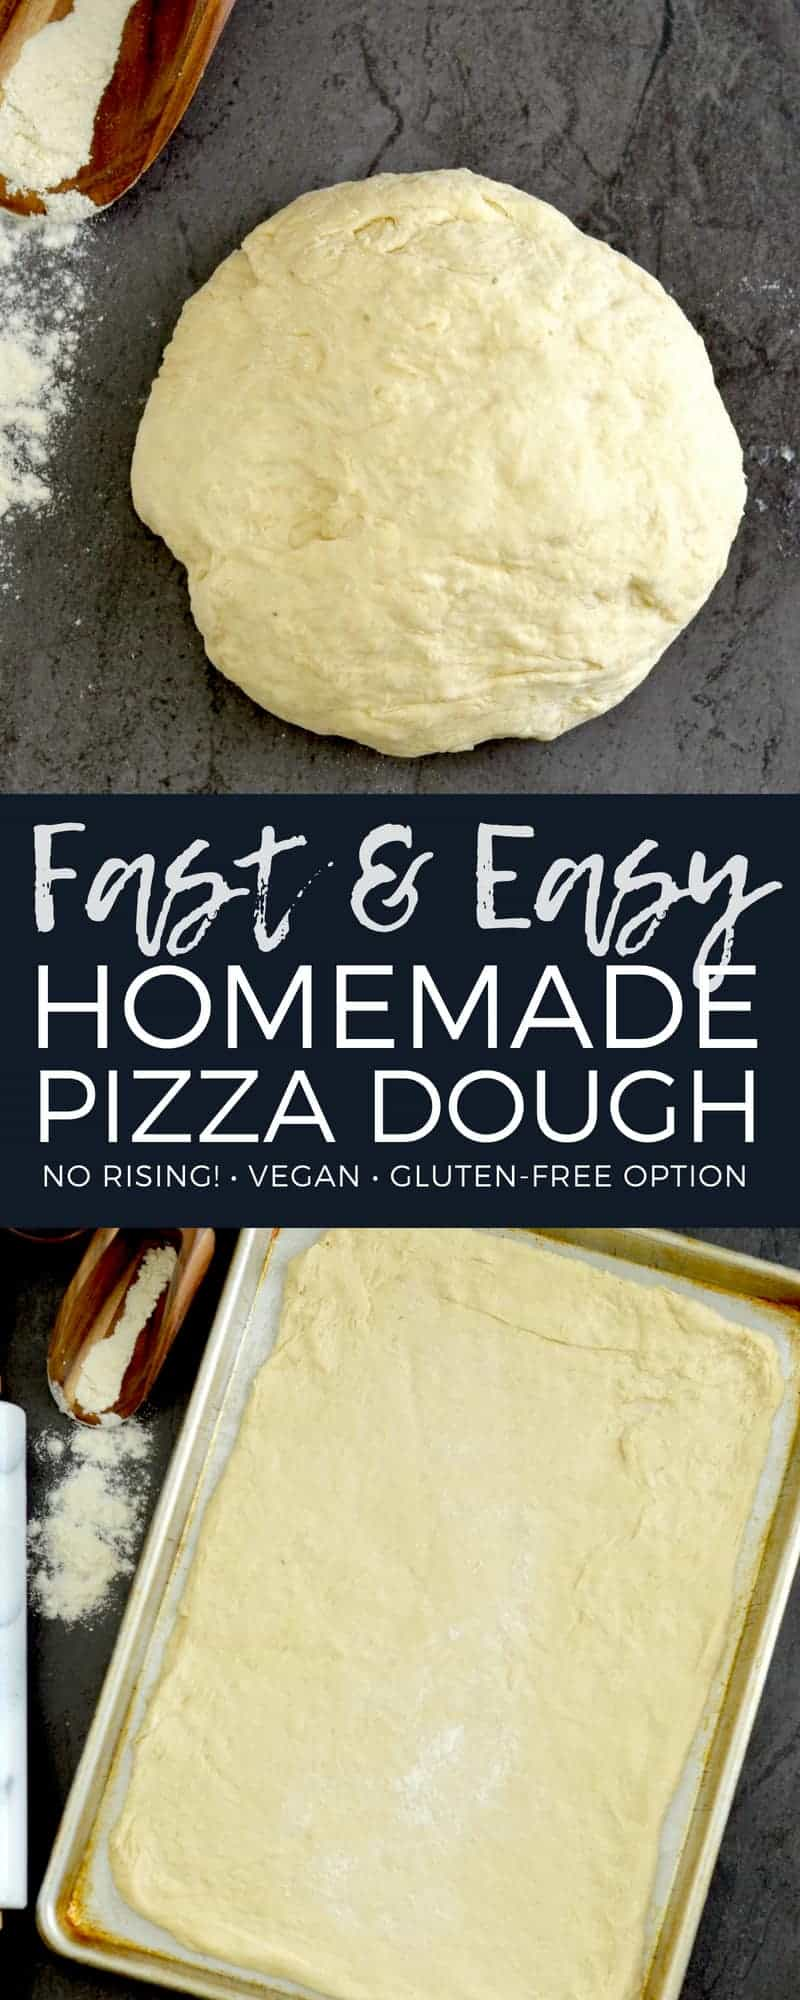 This Easy Homemade Pizza Dough recipe yields the best ever homemade pizza in 30 minutes FLAT! It's made with only 5 ingredients and does not require any rising! Plus it is vegan with a gluten-free option! #pizzadough #vegan #glutenfree #homemade #easy #norising #homeamdepizza #pizza